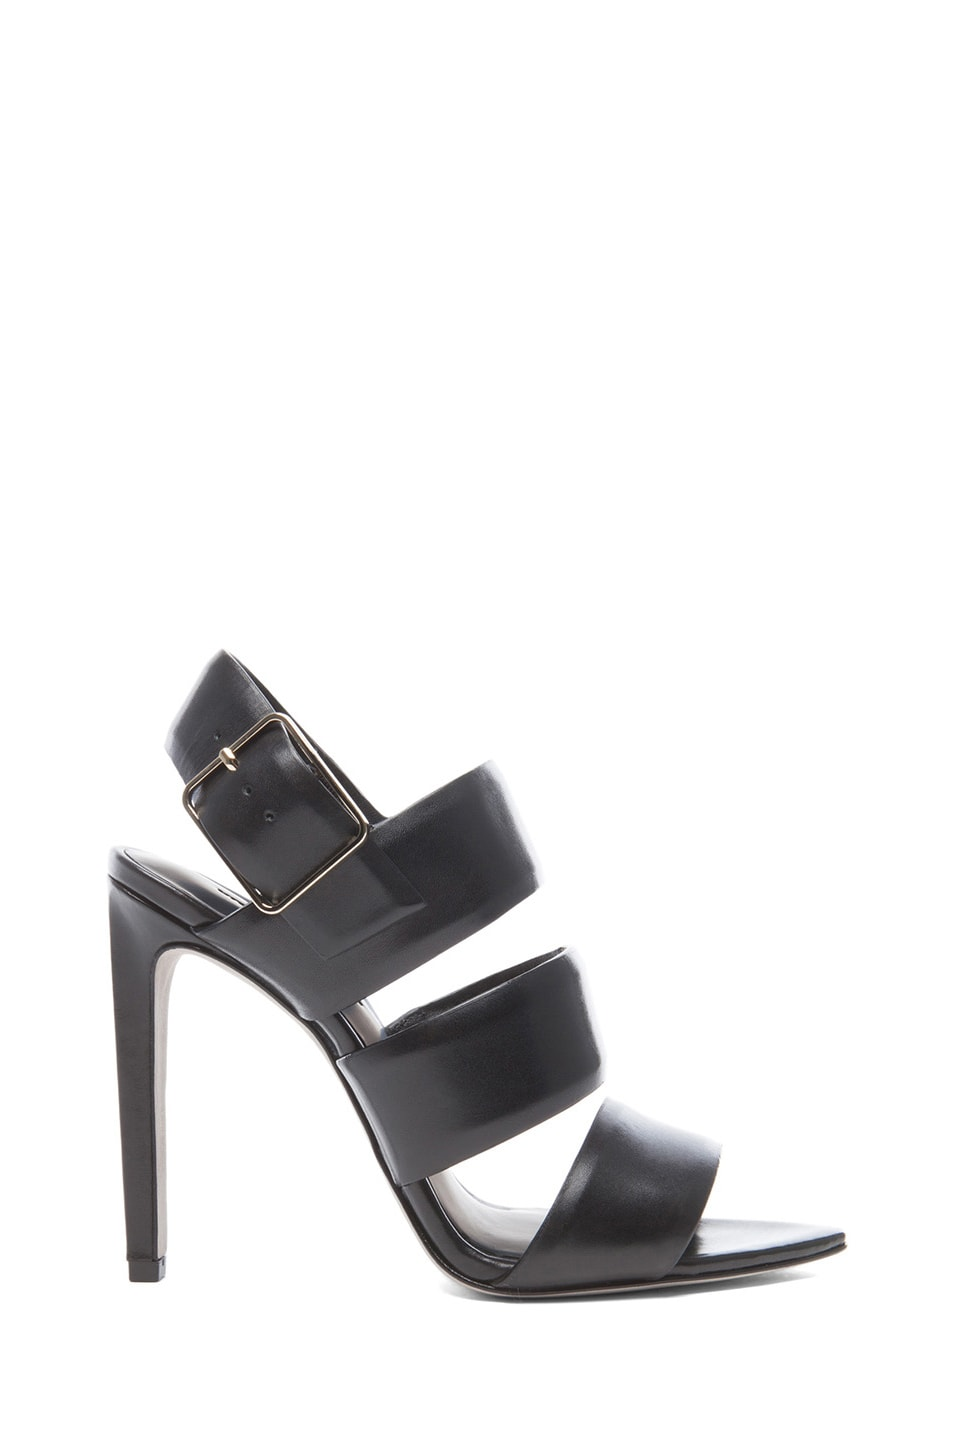 Image 1 of Alexander Wang Kerry Leather Slingback Sandals in Black